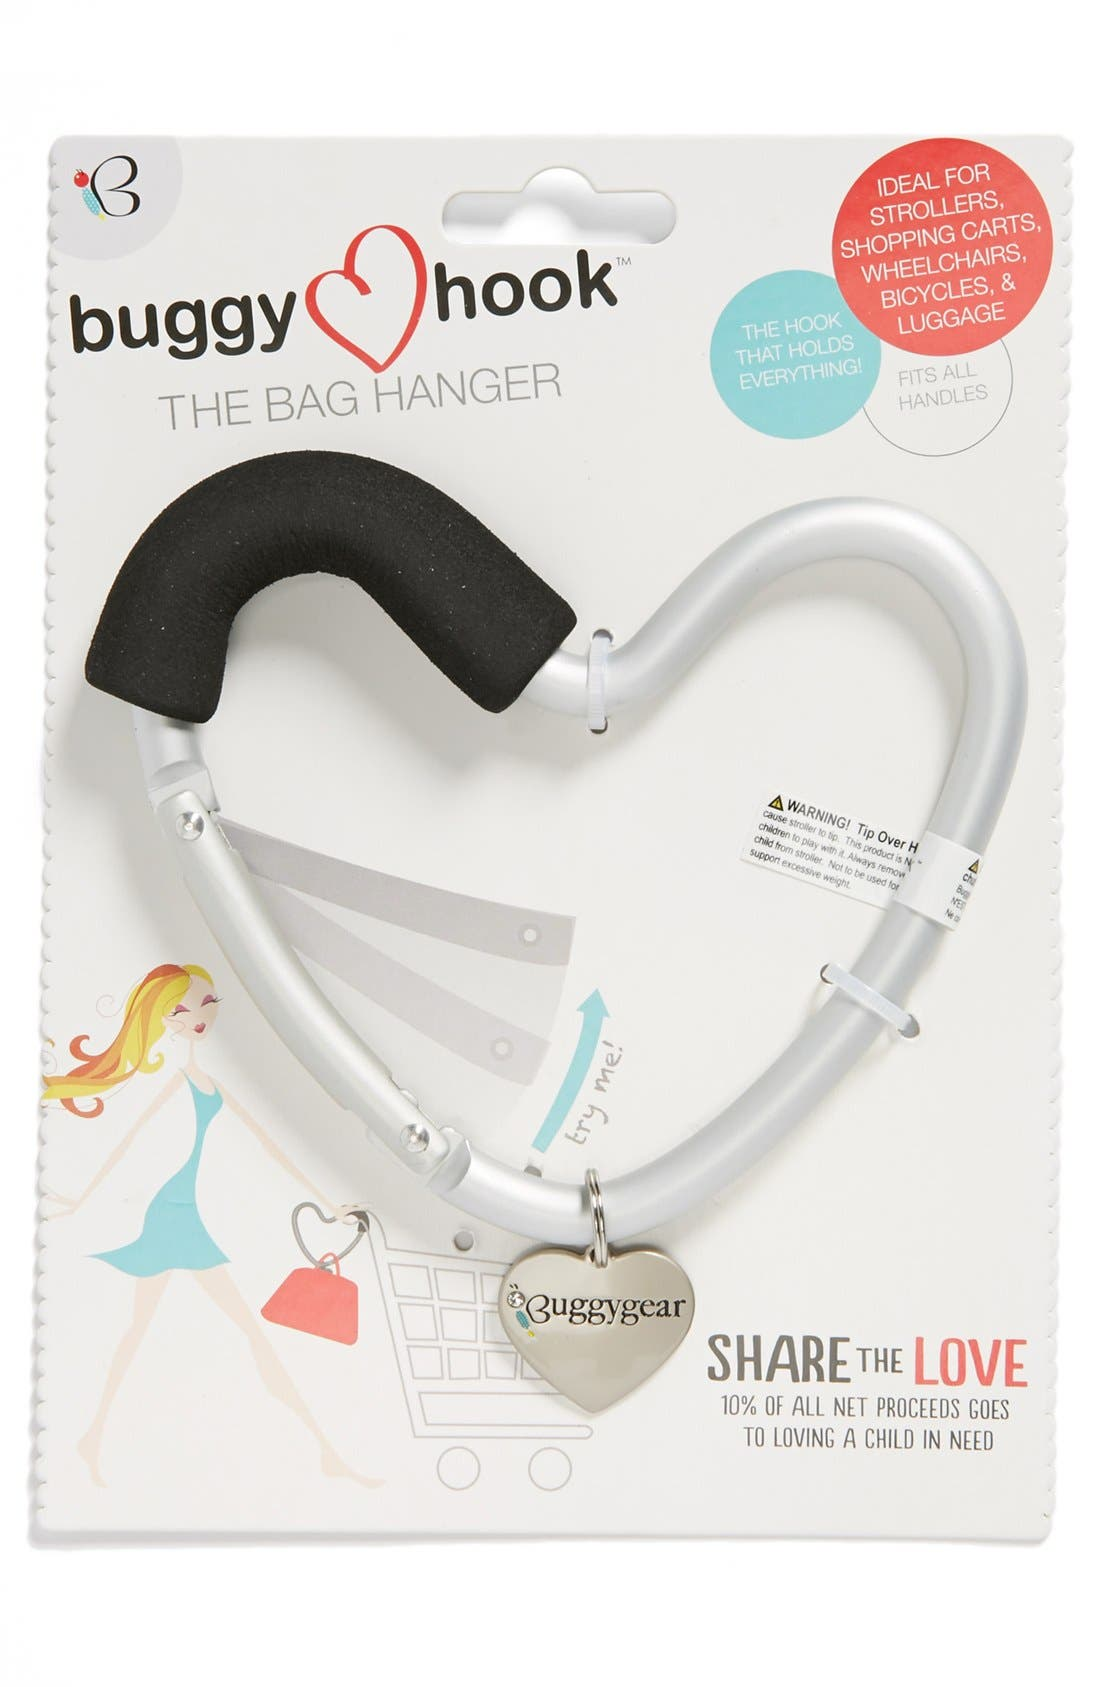 Buggygear 'Buggy Heart Hook' Stroller Bag Hanger,                         Main,                         color, SILVER/ BLACK